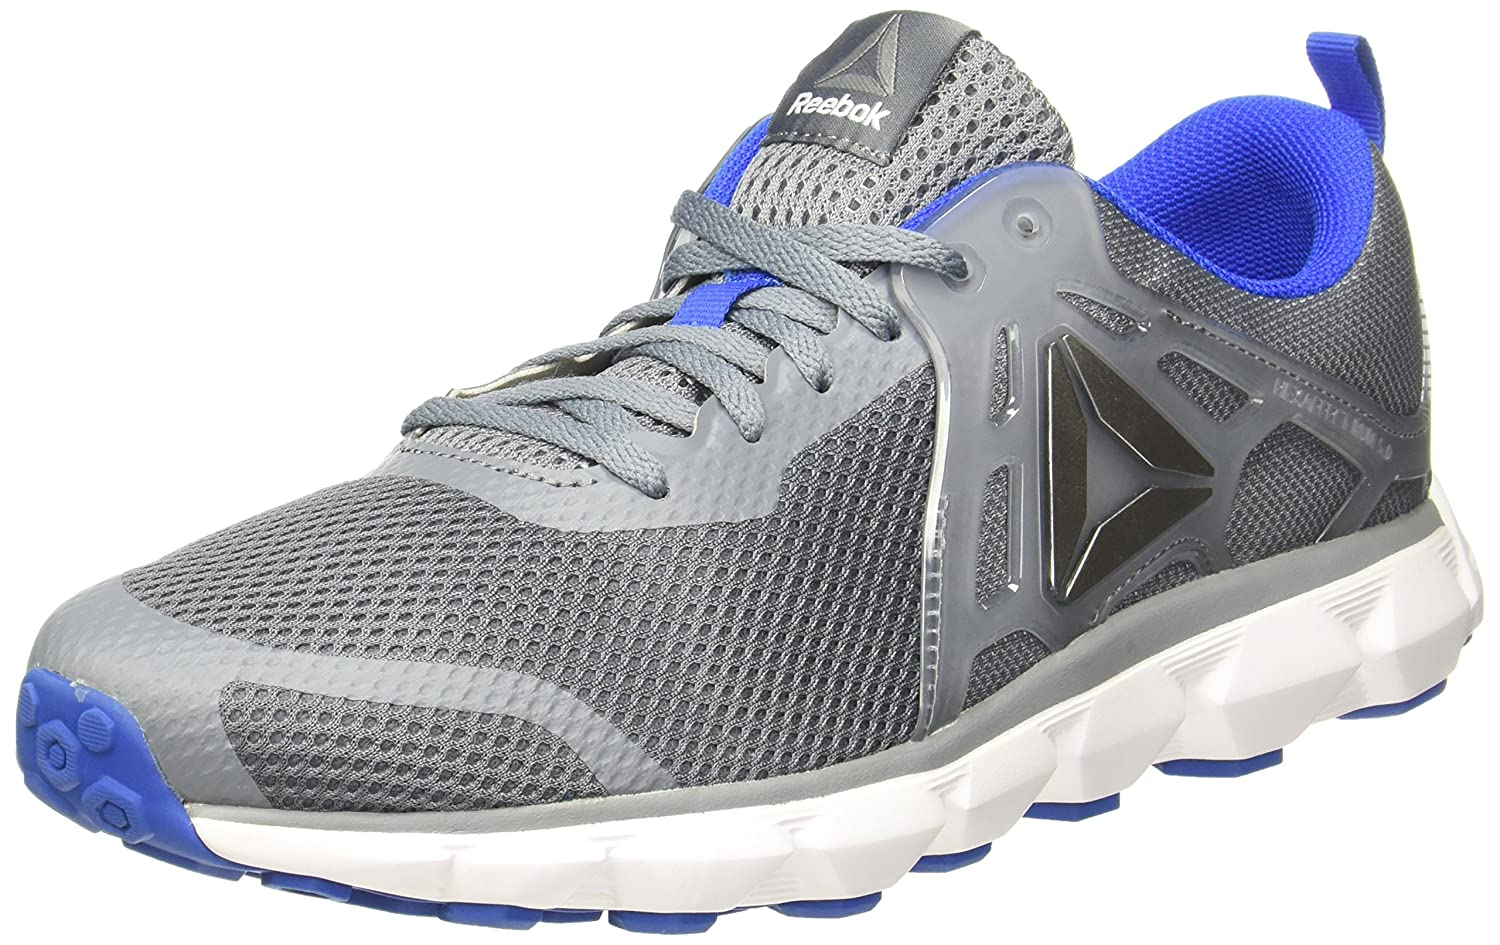 Reebok Men s Hexaffect Run 5.0 MTM Running Shoes  Buy Online at Low Prices  in India - Amazon.in 74123403a